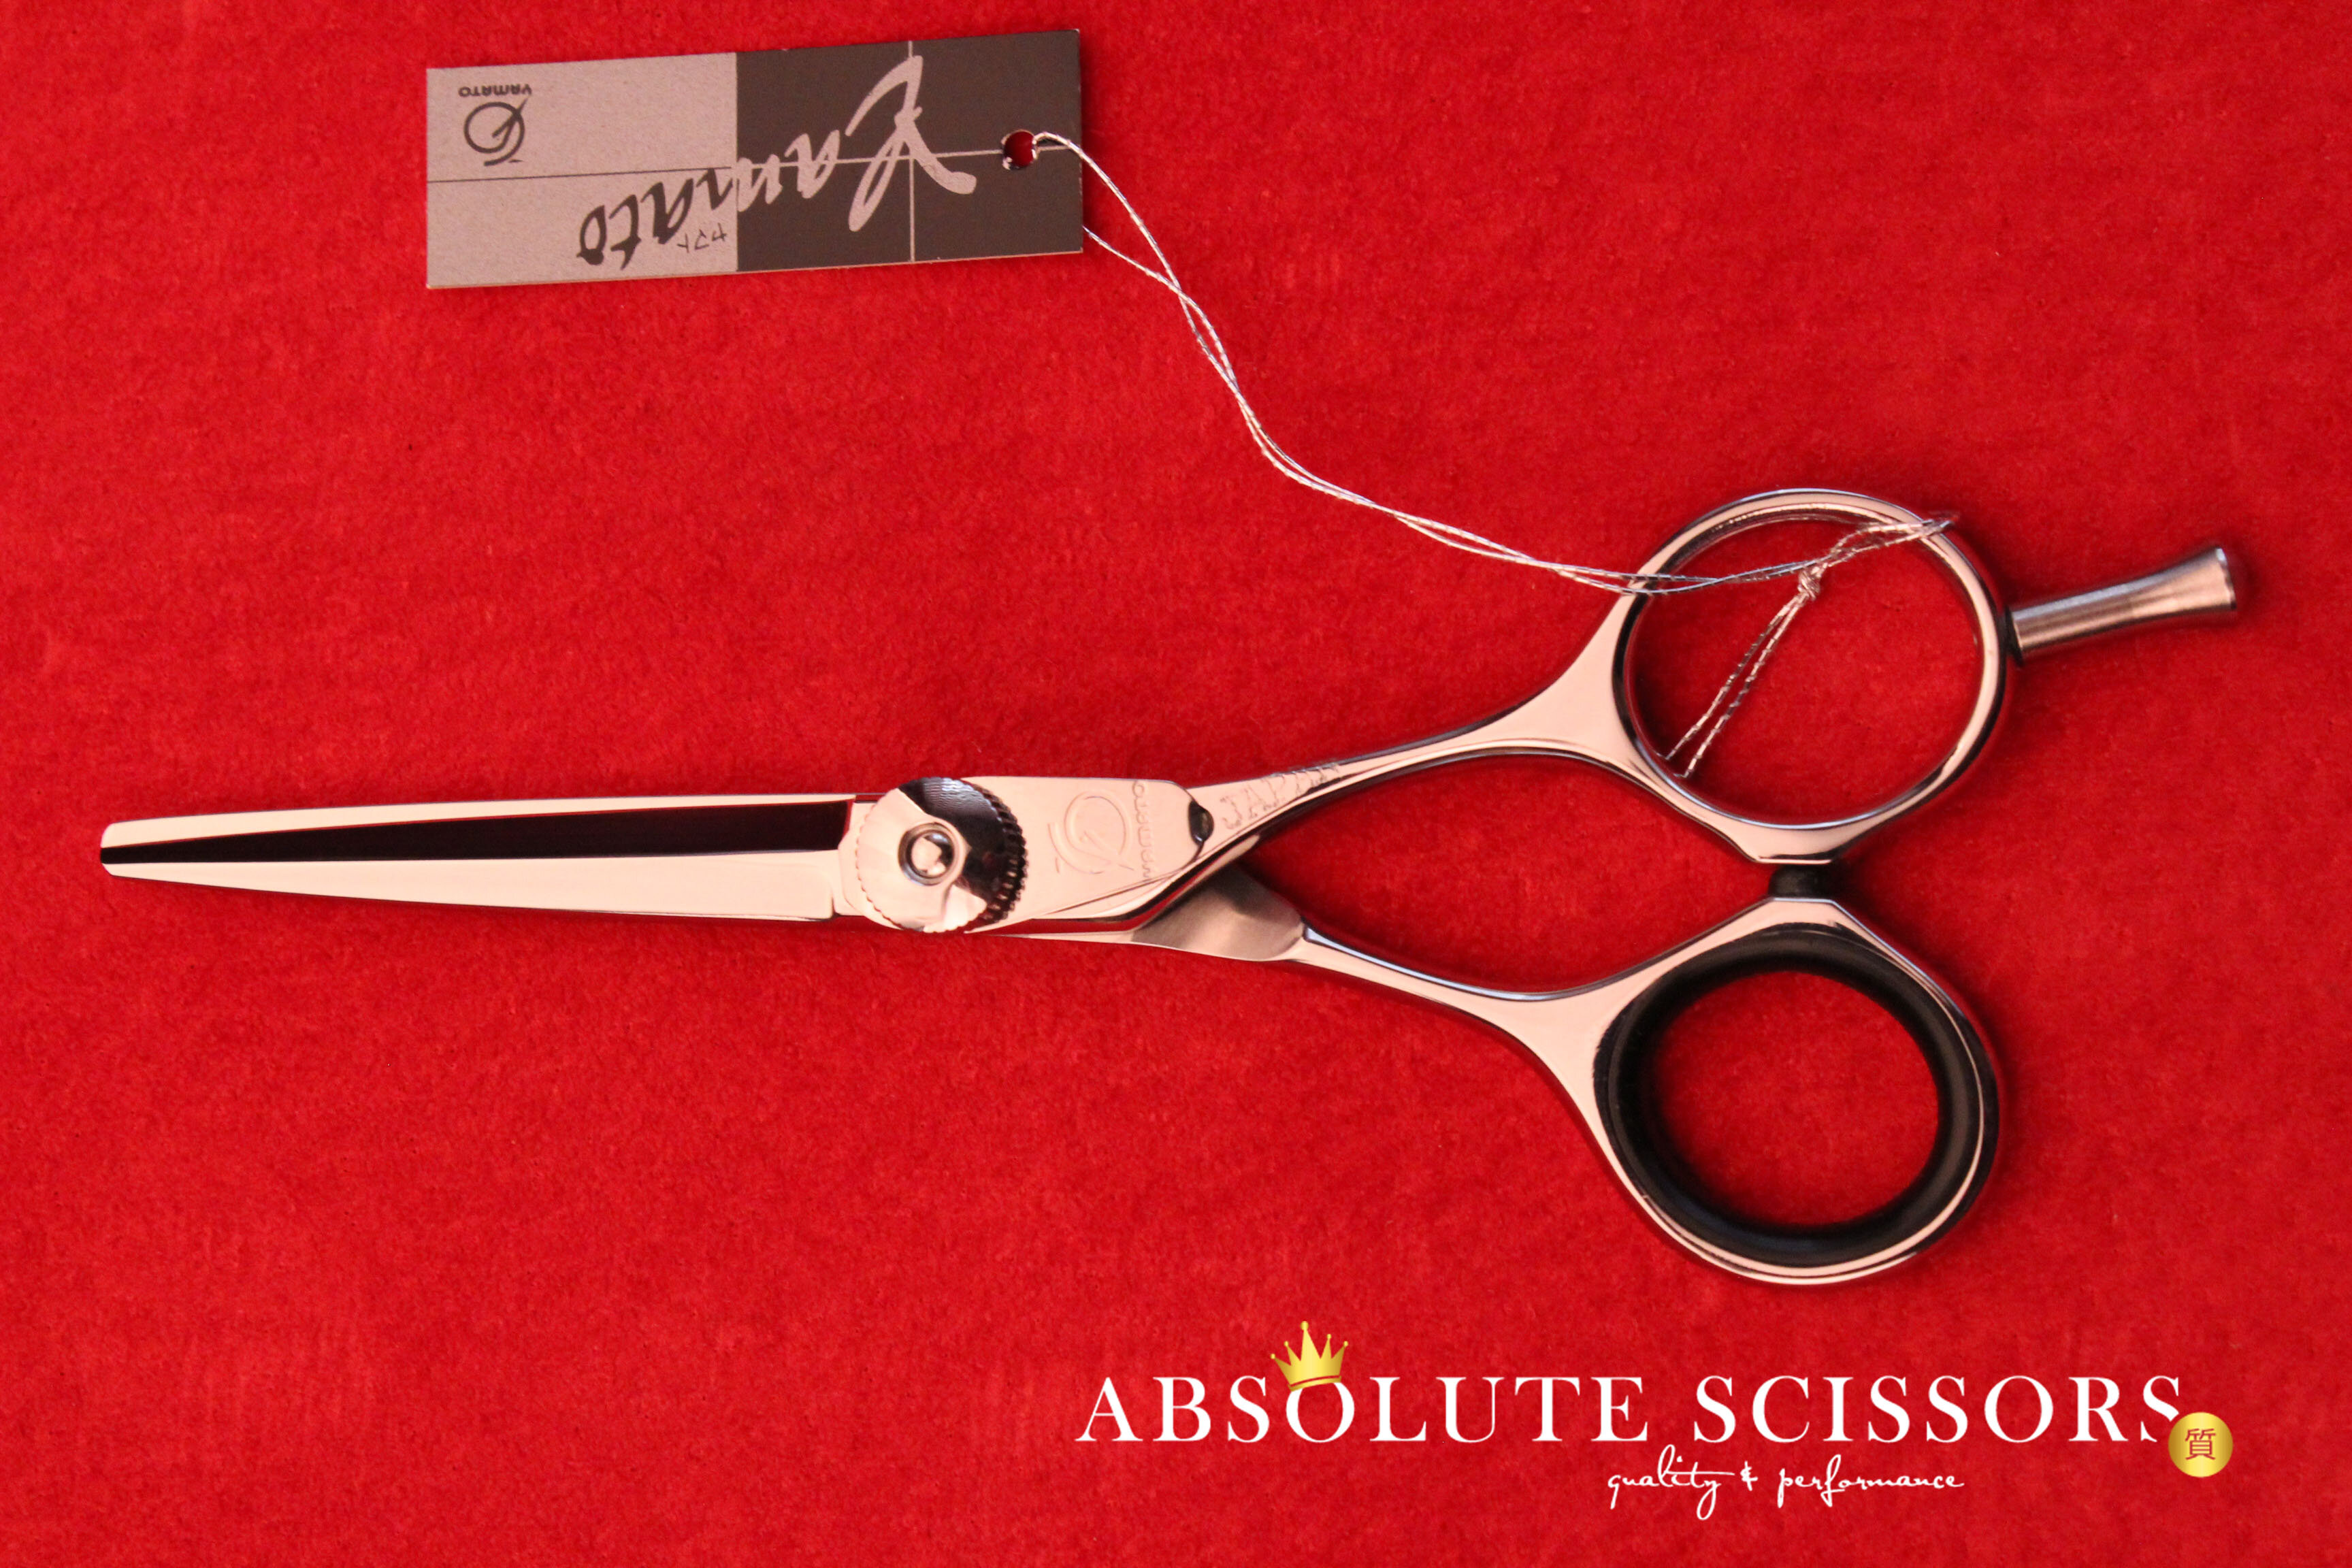 Elite YV50 3662 Yamato hair scissors size 5.5 inches